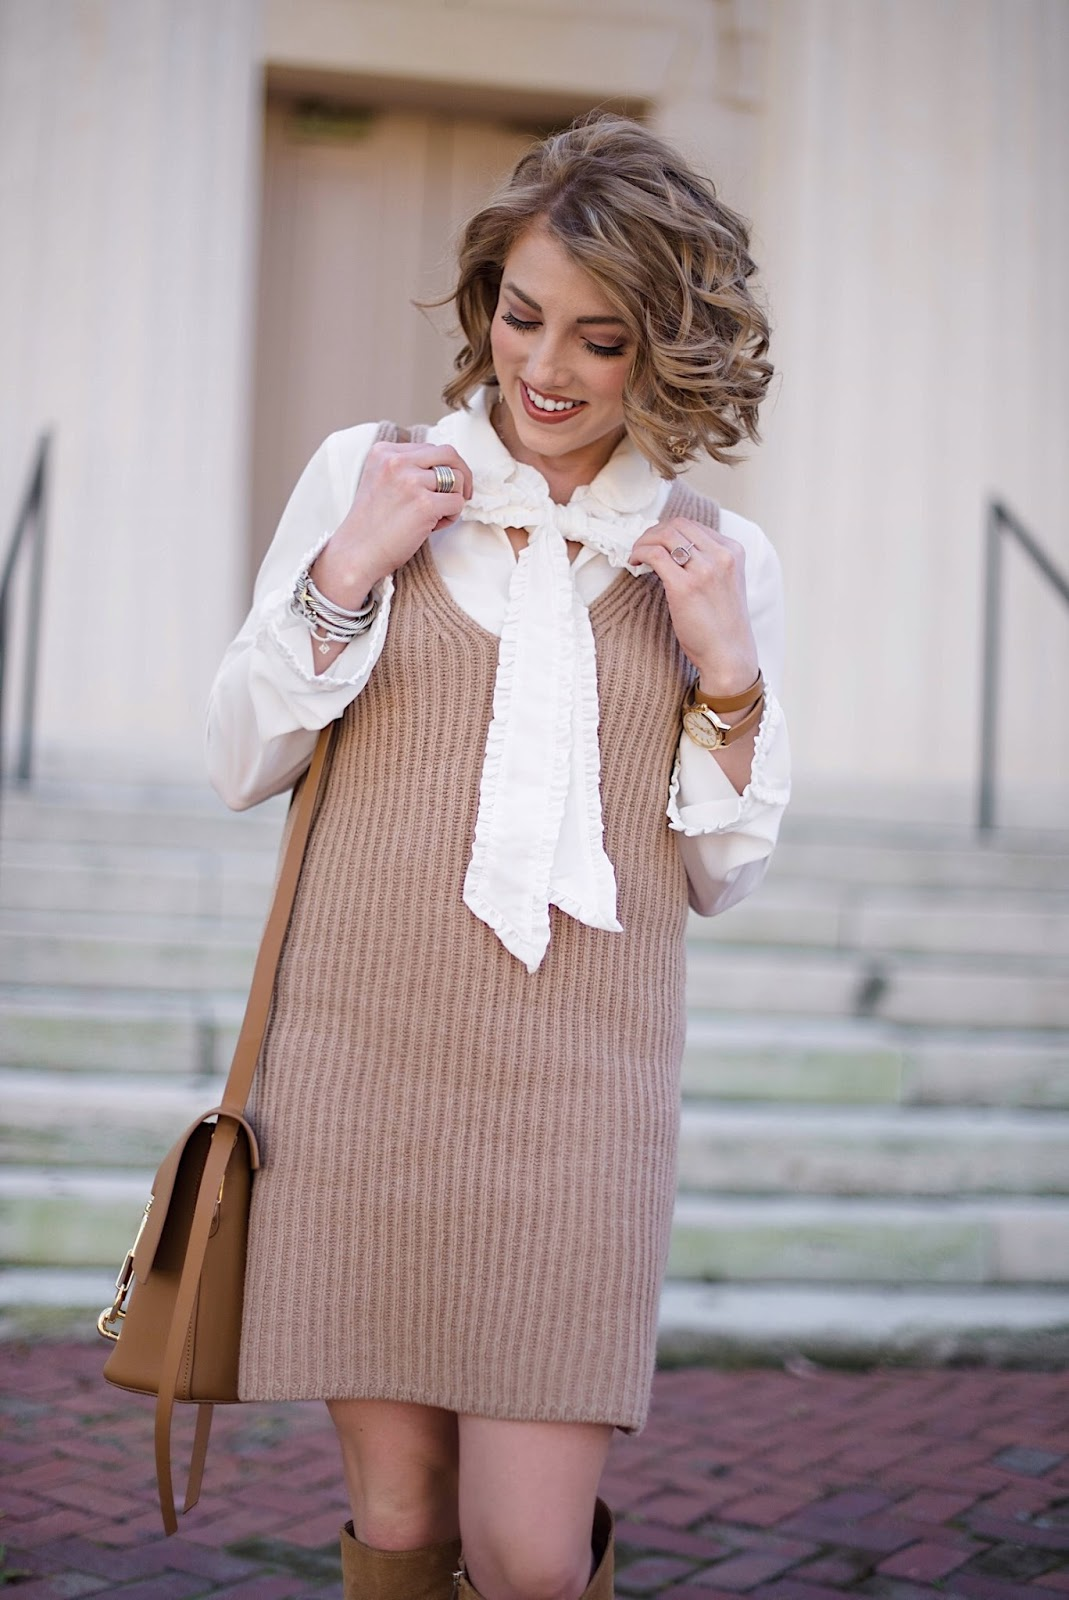 Madewell Sleeveless Sweater Dress - Fall Fashion on Something Delightful Blog